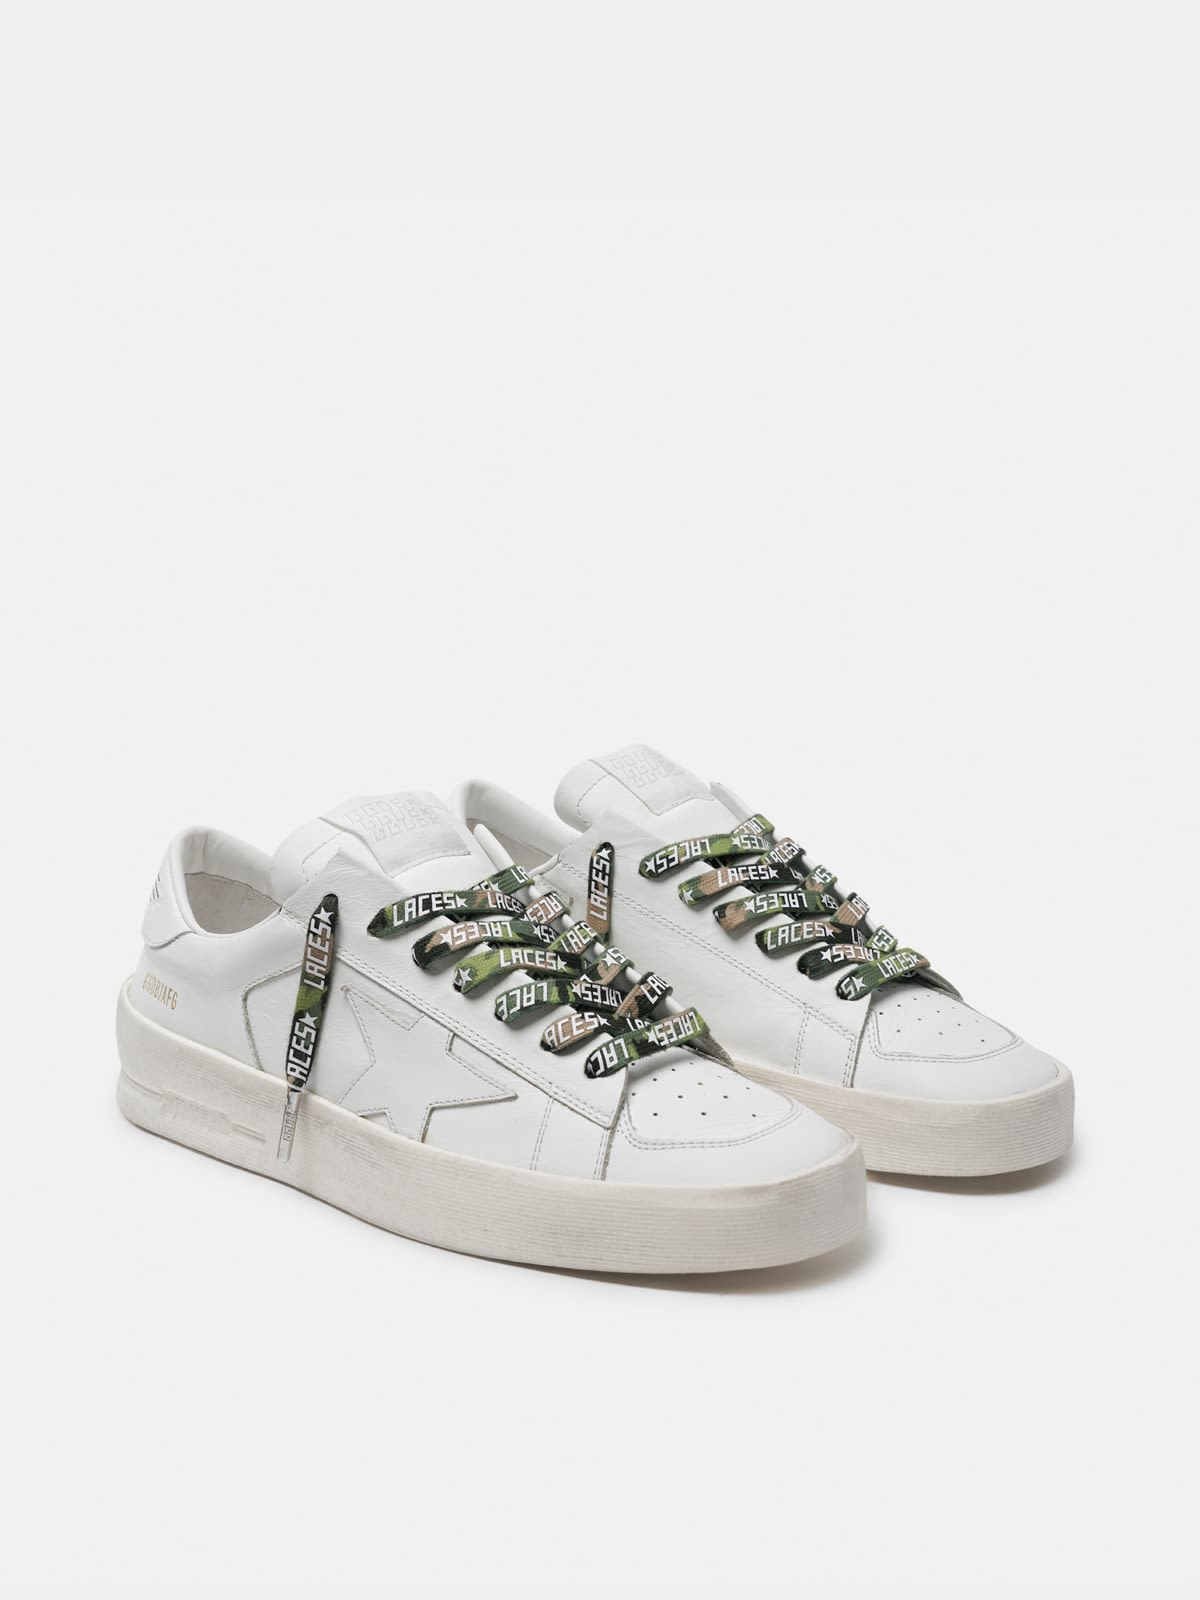 Women's green camouflage laces with white laces print